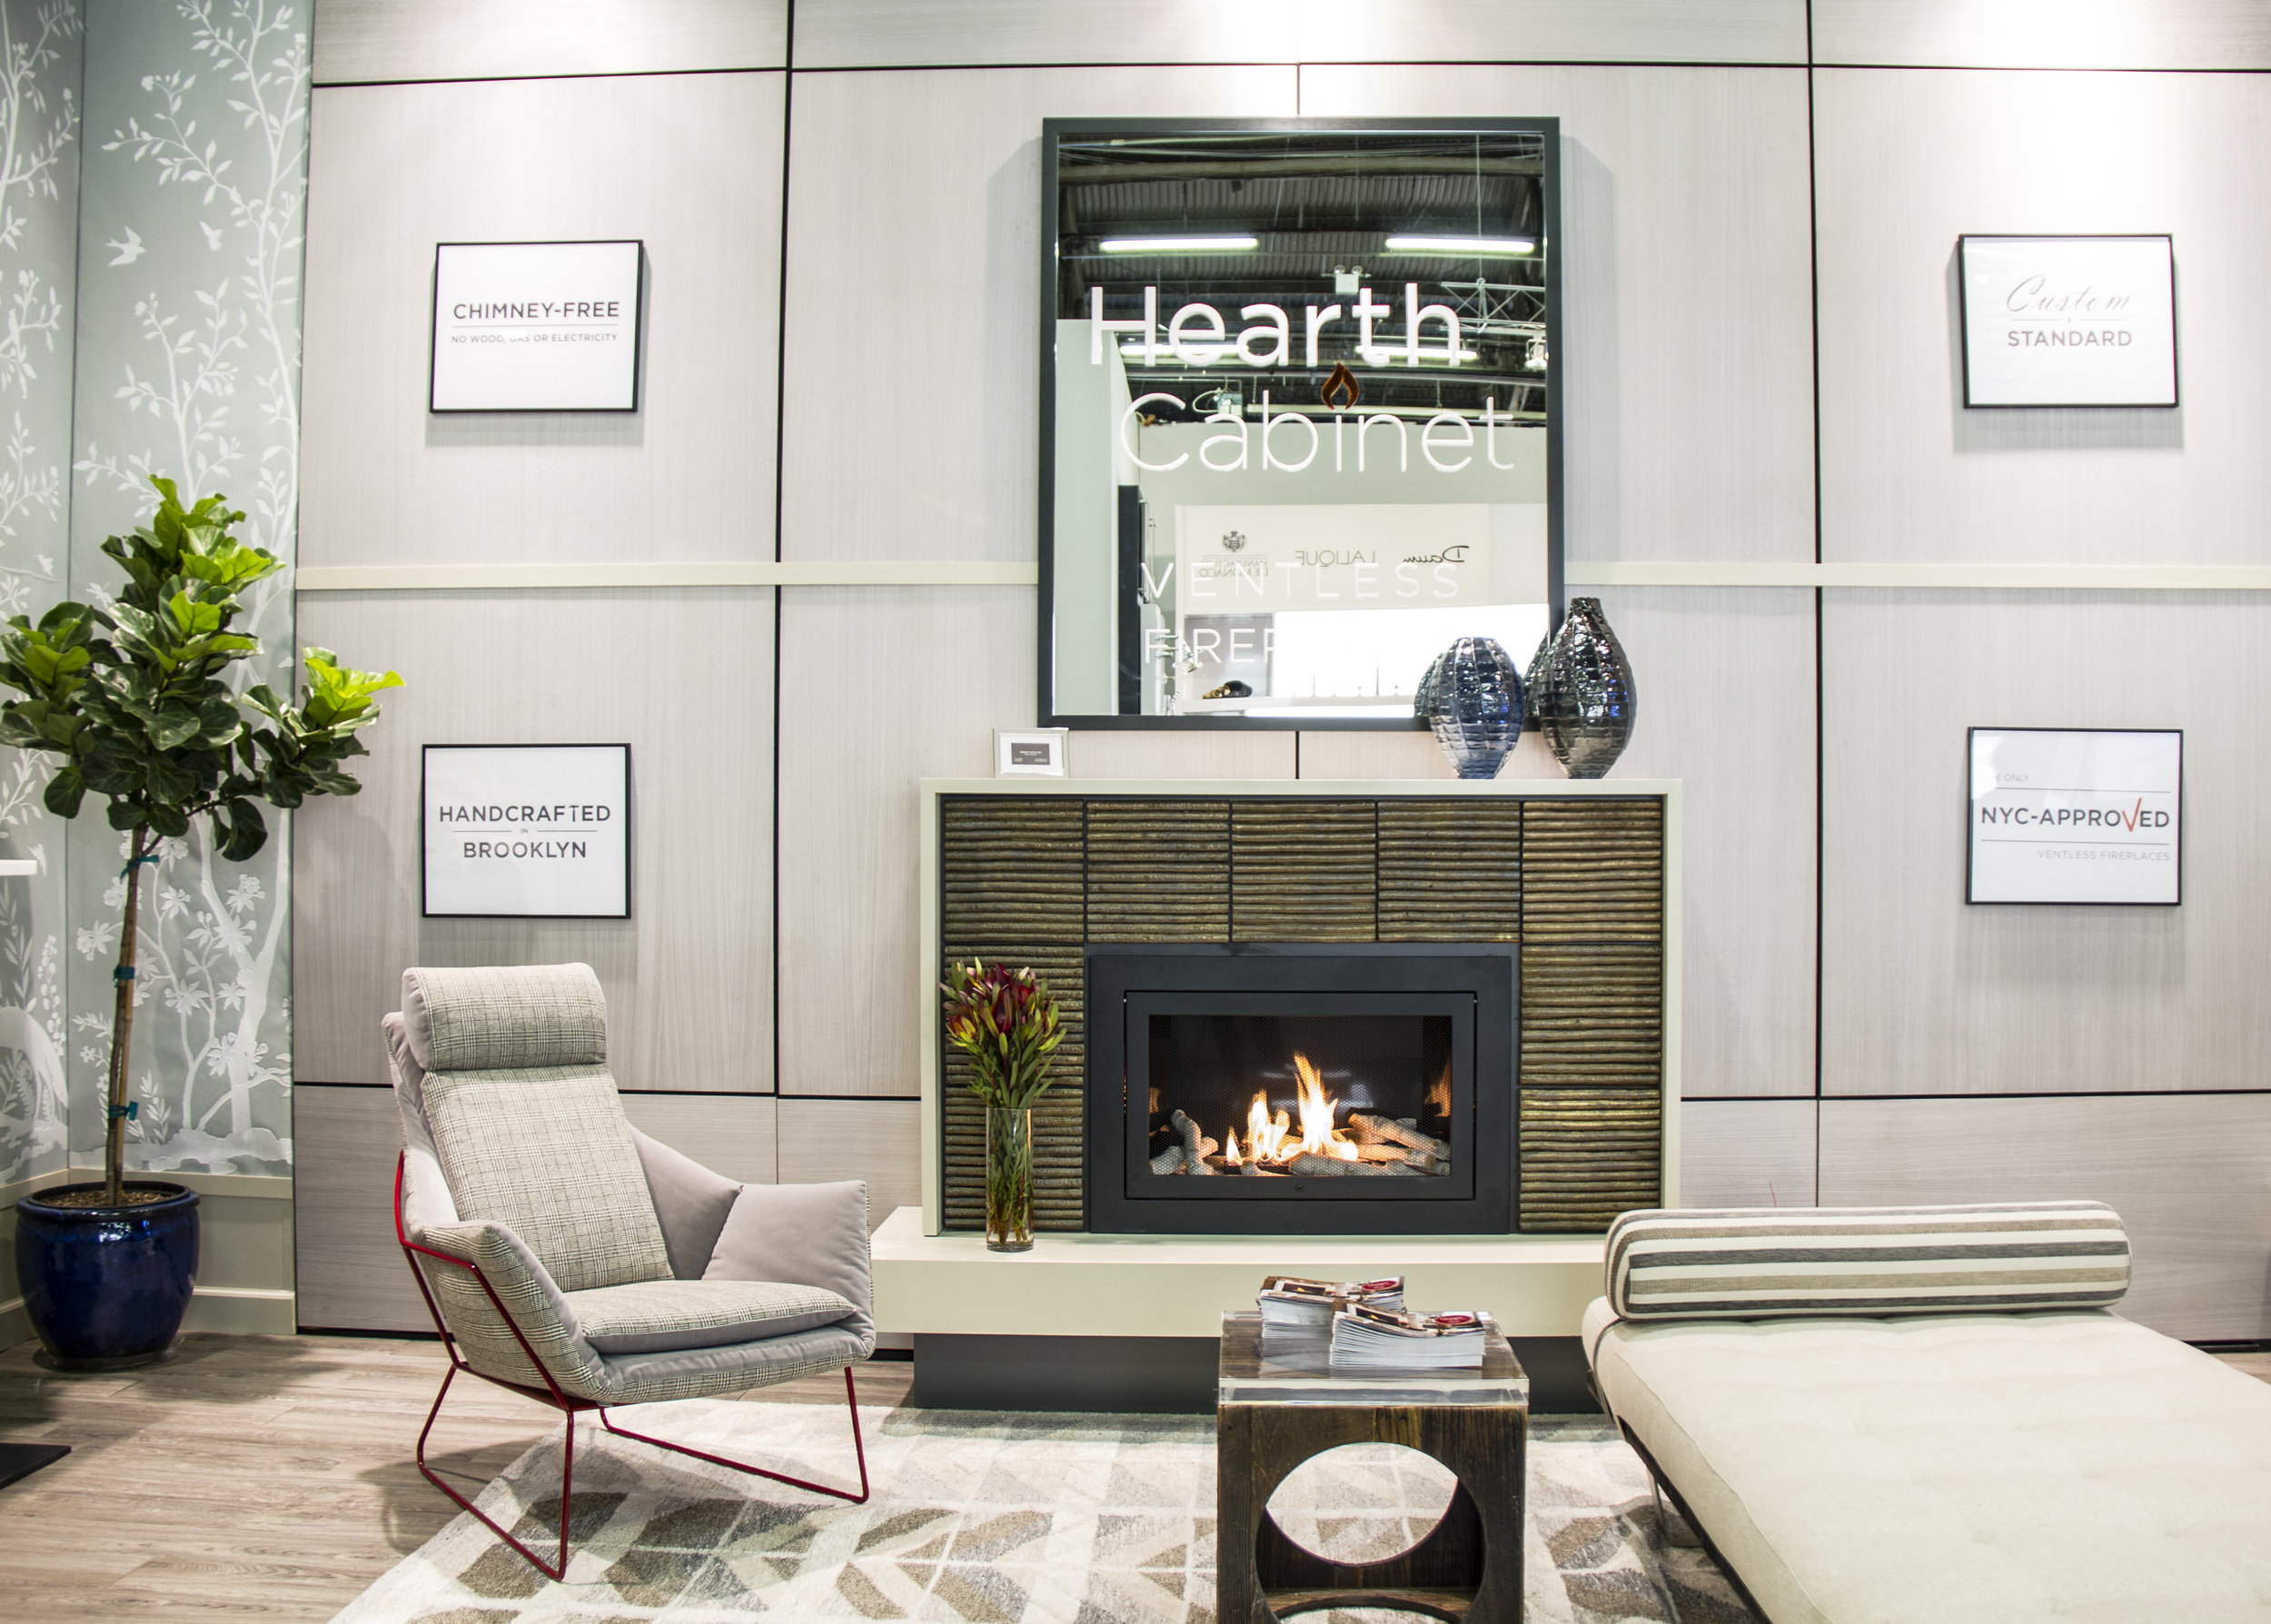 Arch Digest Design Show 2017, HearthCabinet® Luxury Ventless Fireplaces Booth 140